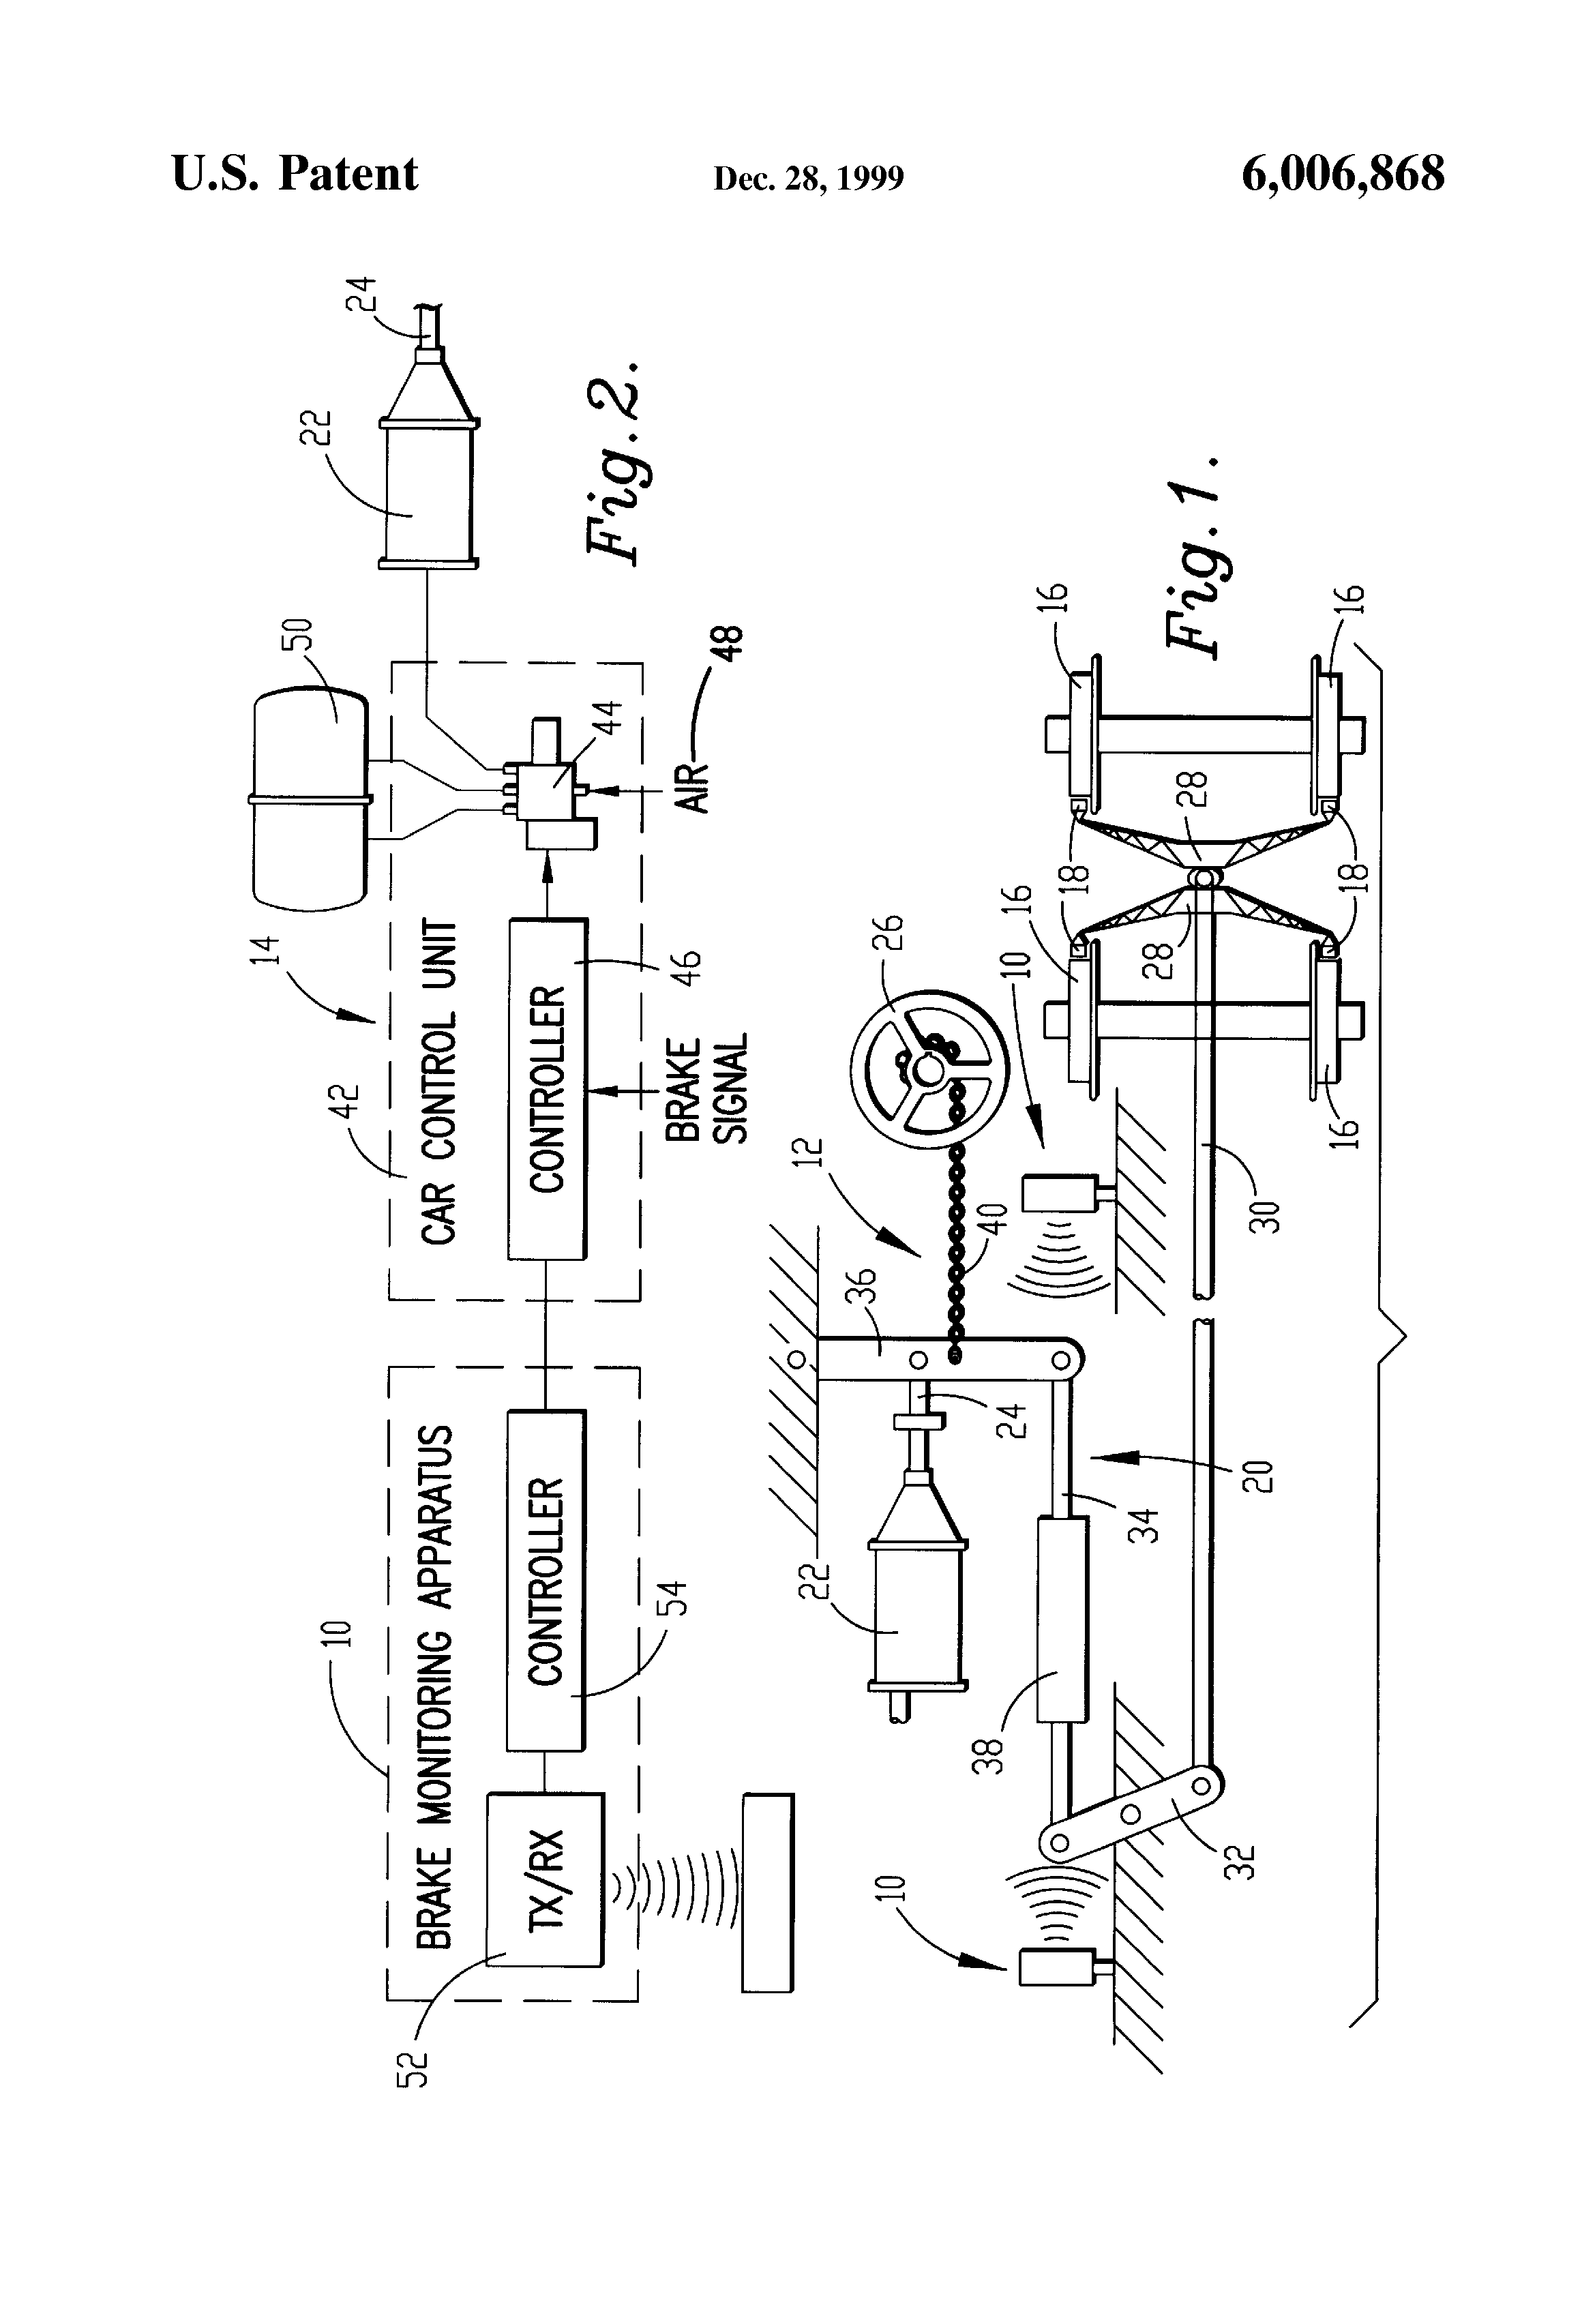 Rail Brake Diagram : Patent us system for monitoring brake status on a